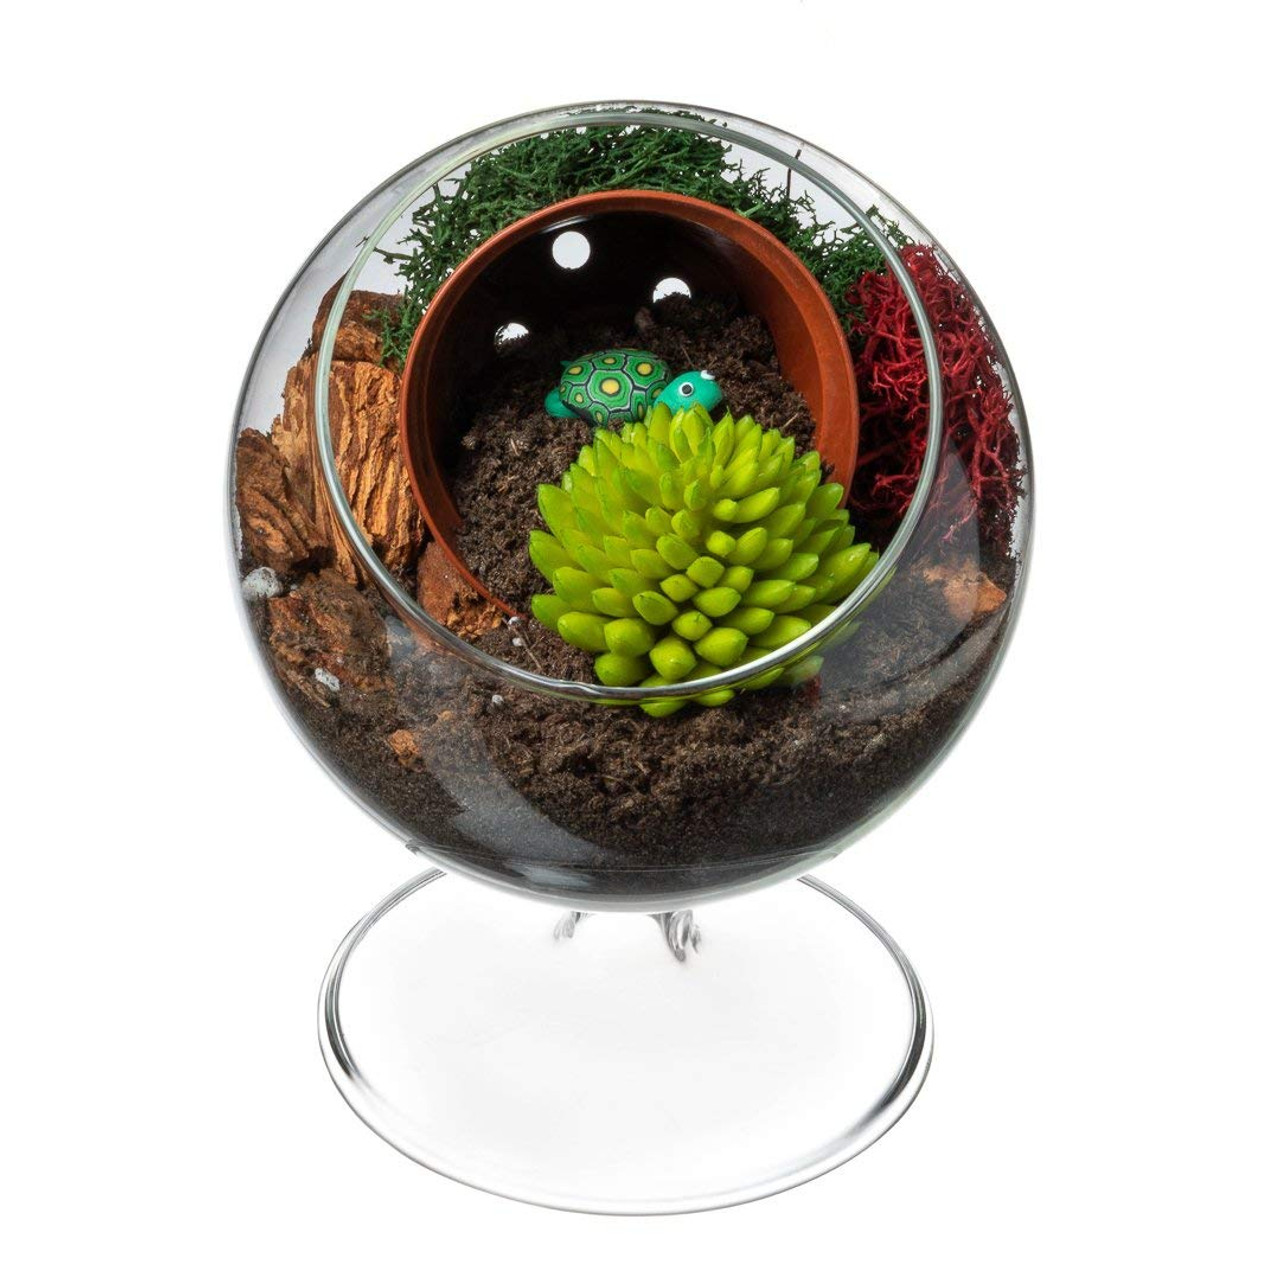 Faux Succulent Terrarium Kit Turtle Island Complete Diy Gift Set 4 Standing Glass Globe With Faux Succulent